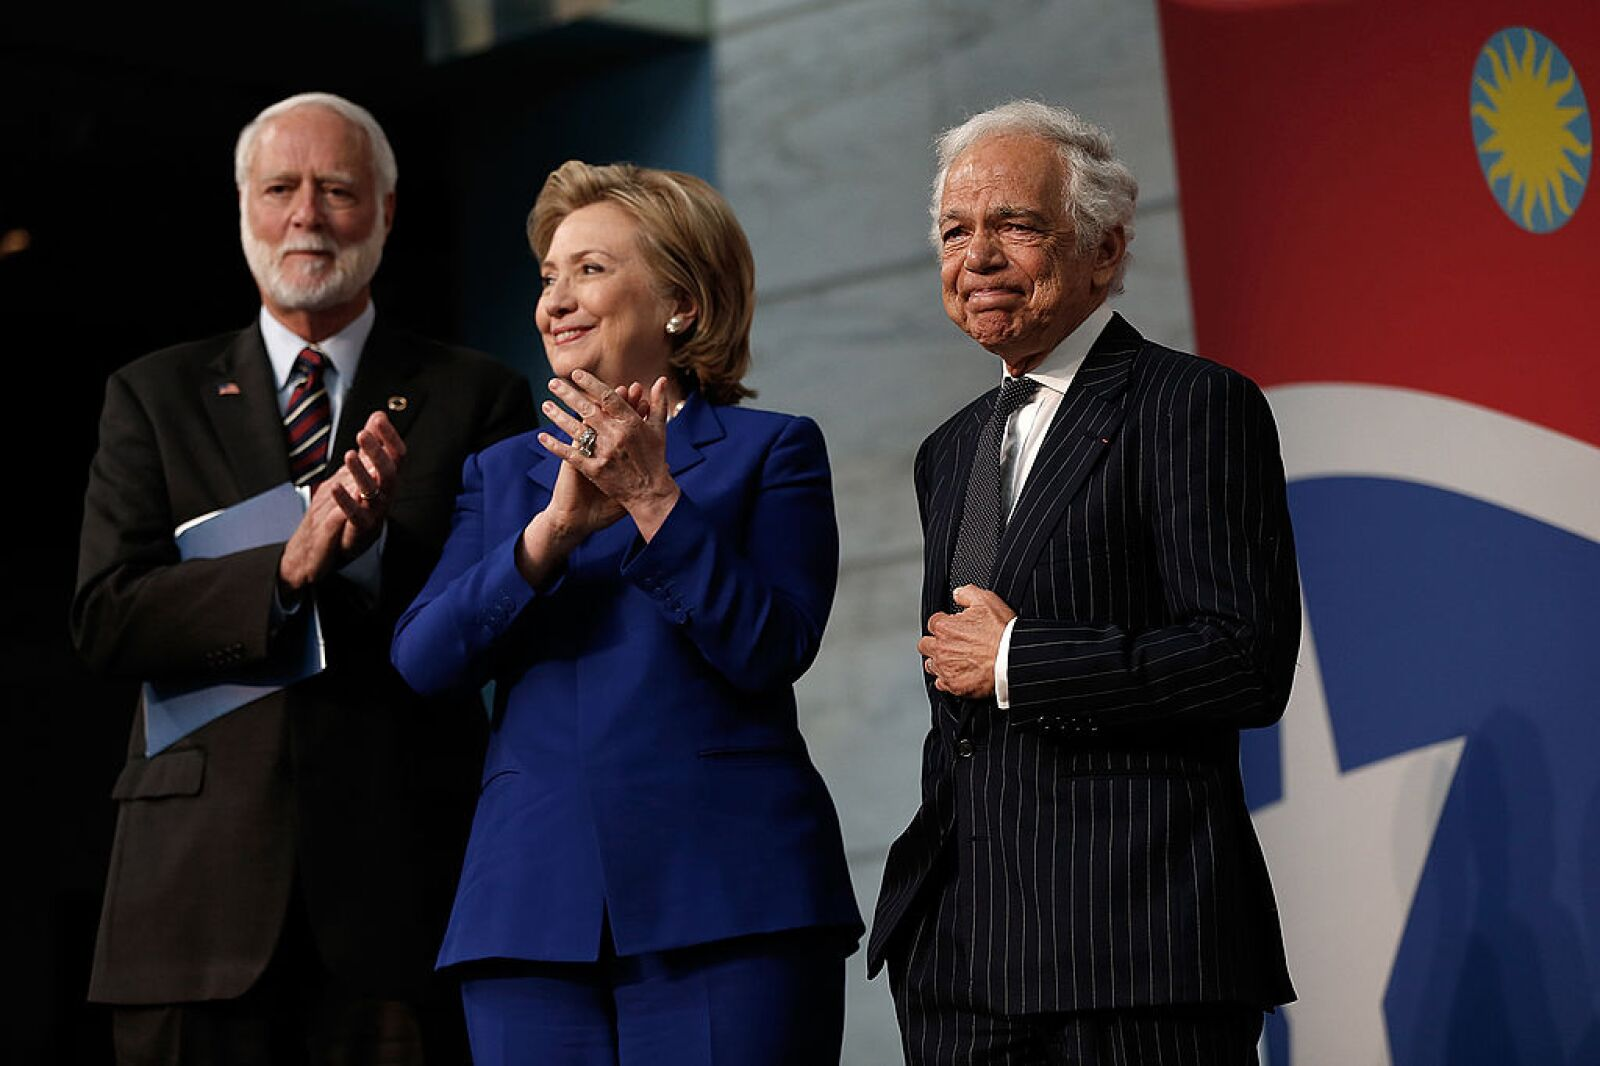 Jeh Johnson And Hillary Clinton Attend Naturalization Ceremony In DC